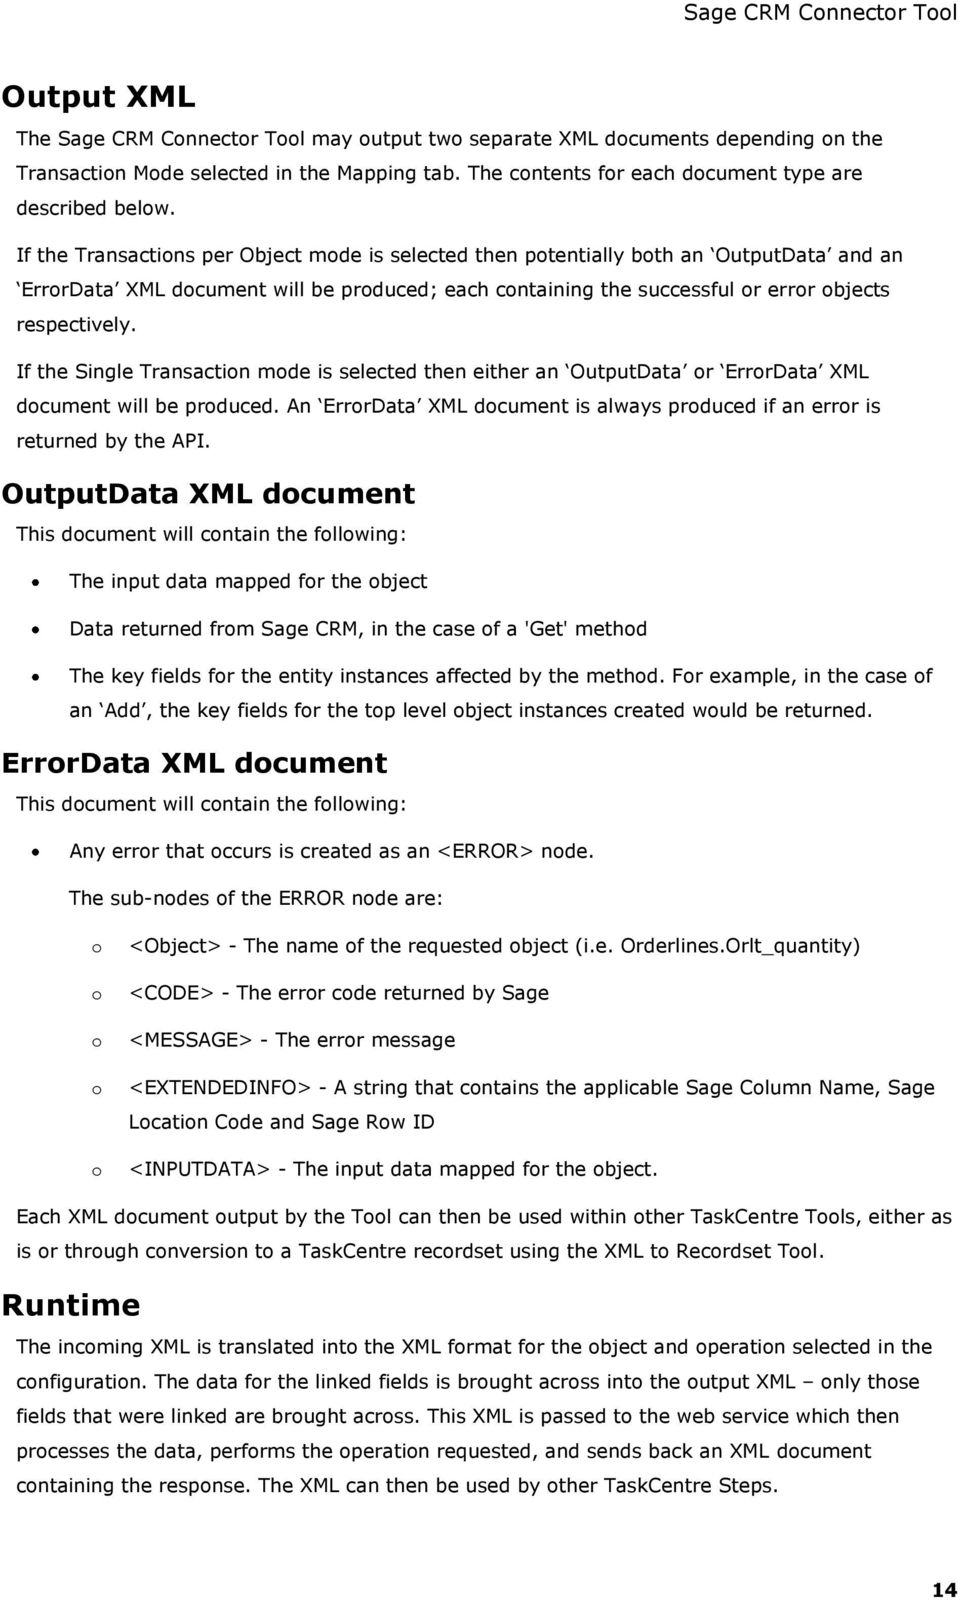 If the Single Transaction mode is selected then either an OutputData or ErrorData XML document will be produced. An ErrorData XML document is always produced if an error is returned by the API.